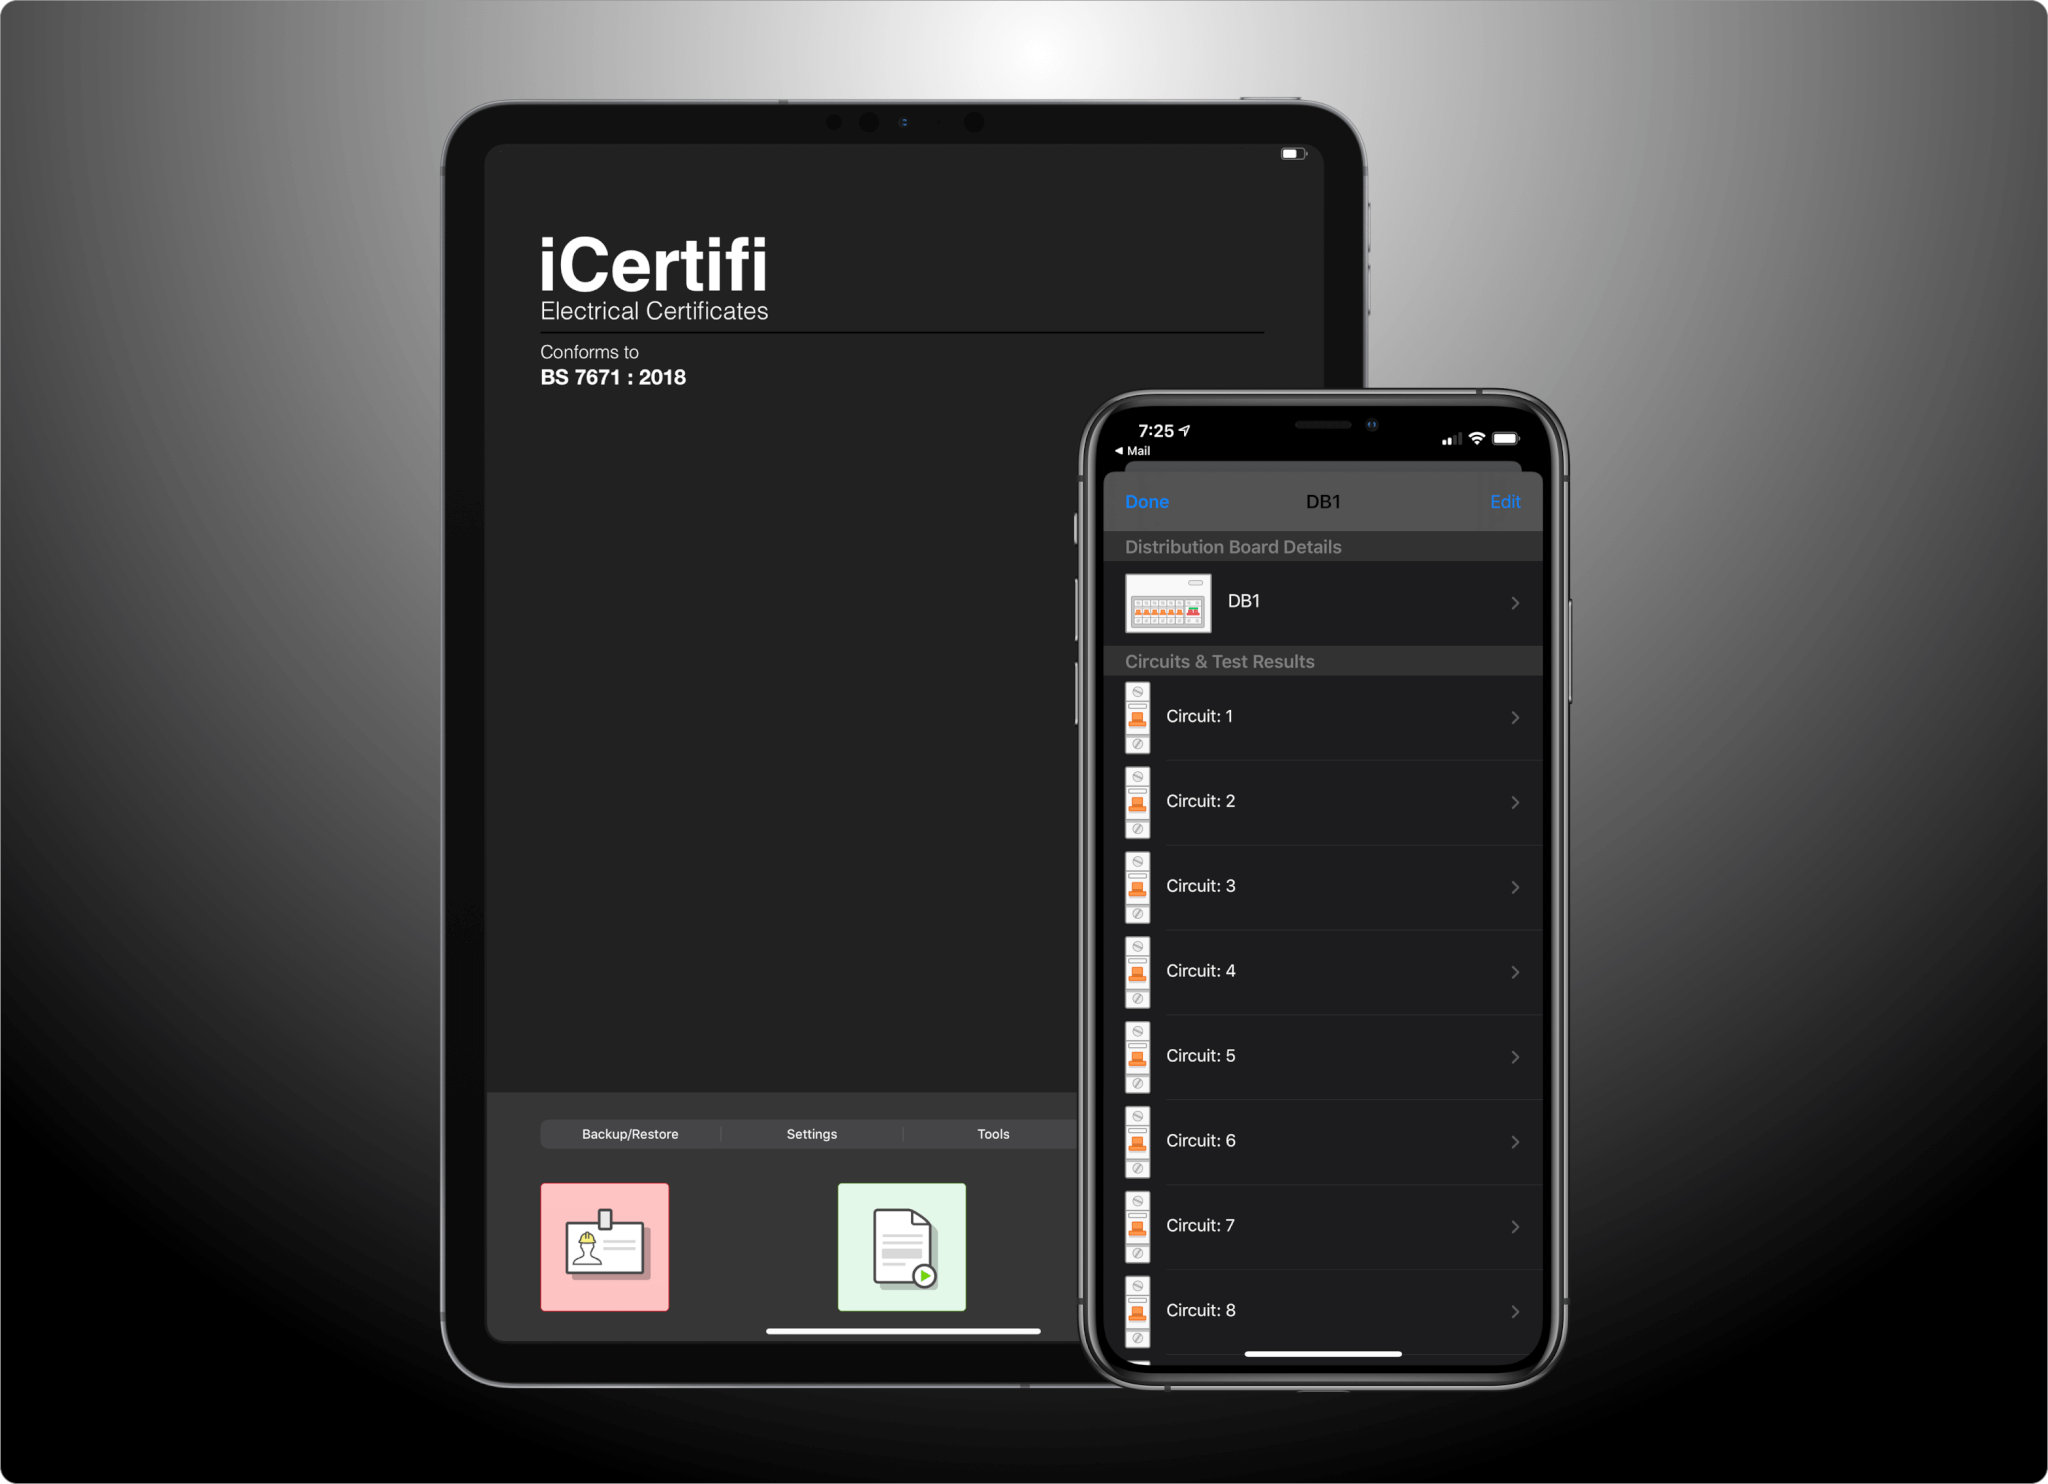 iCertifi & iOS 13 – Electrical Certificates In Dark Mode